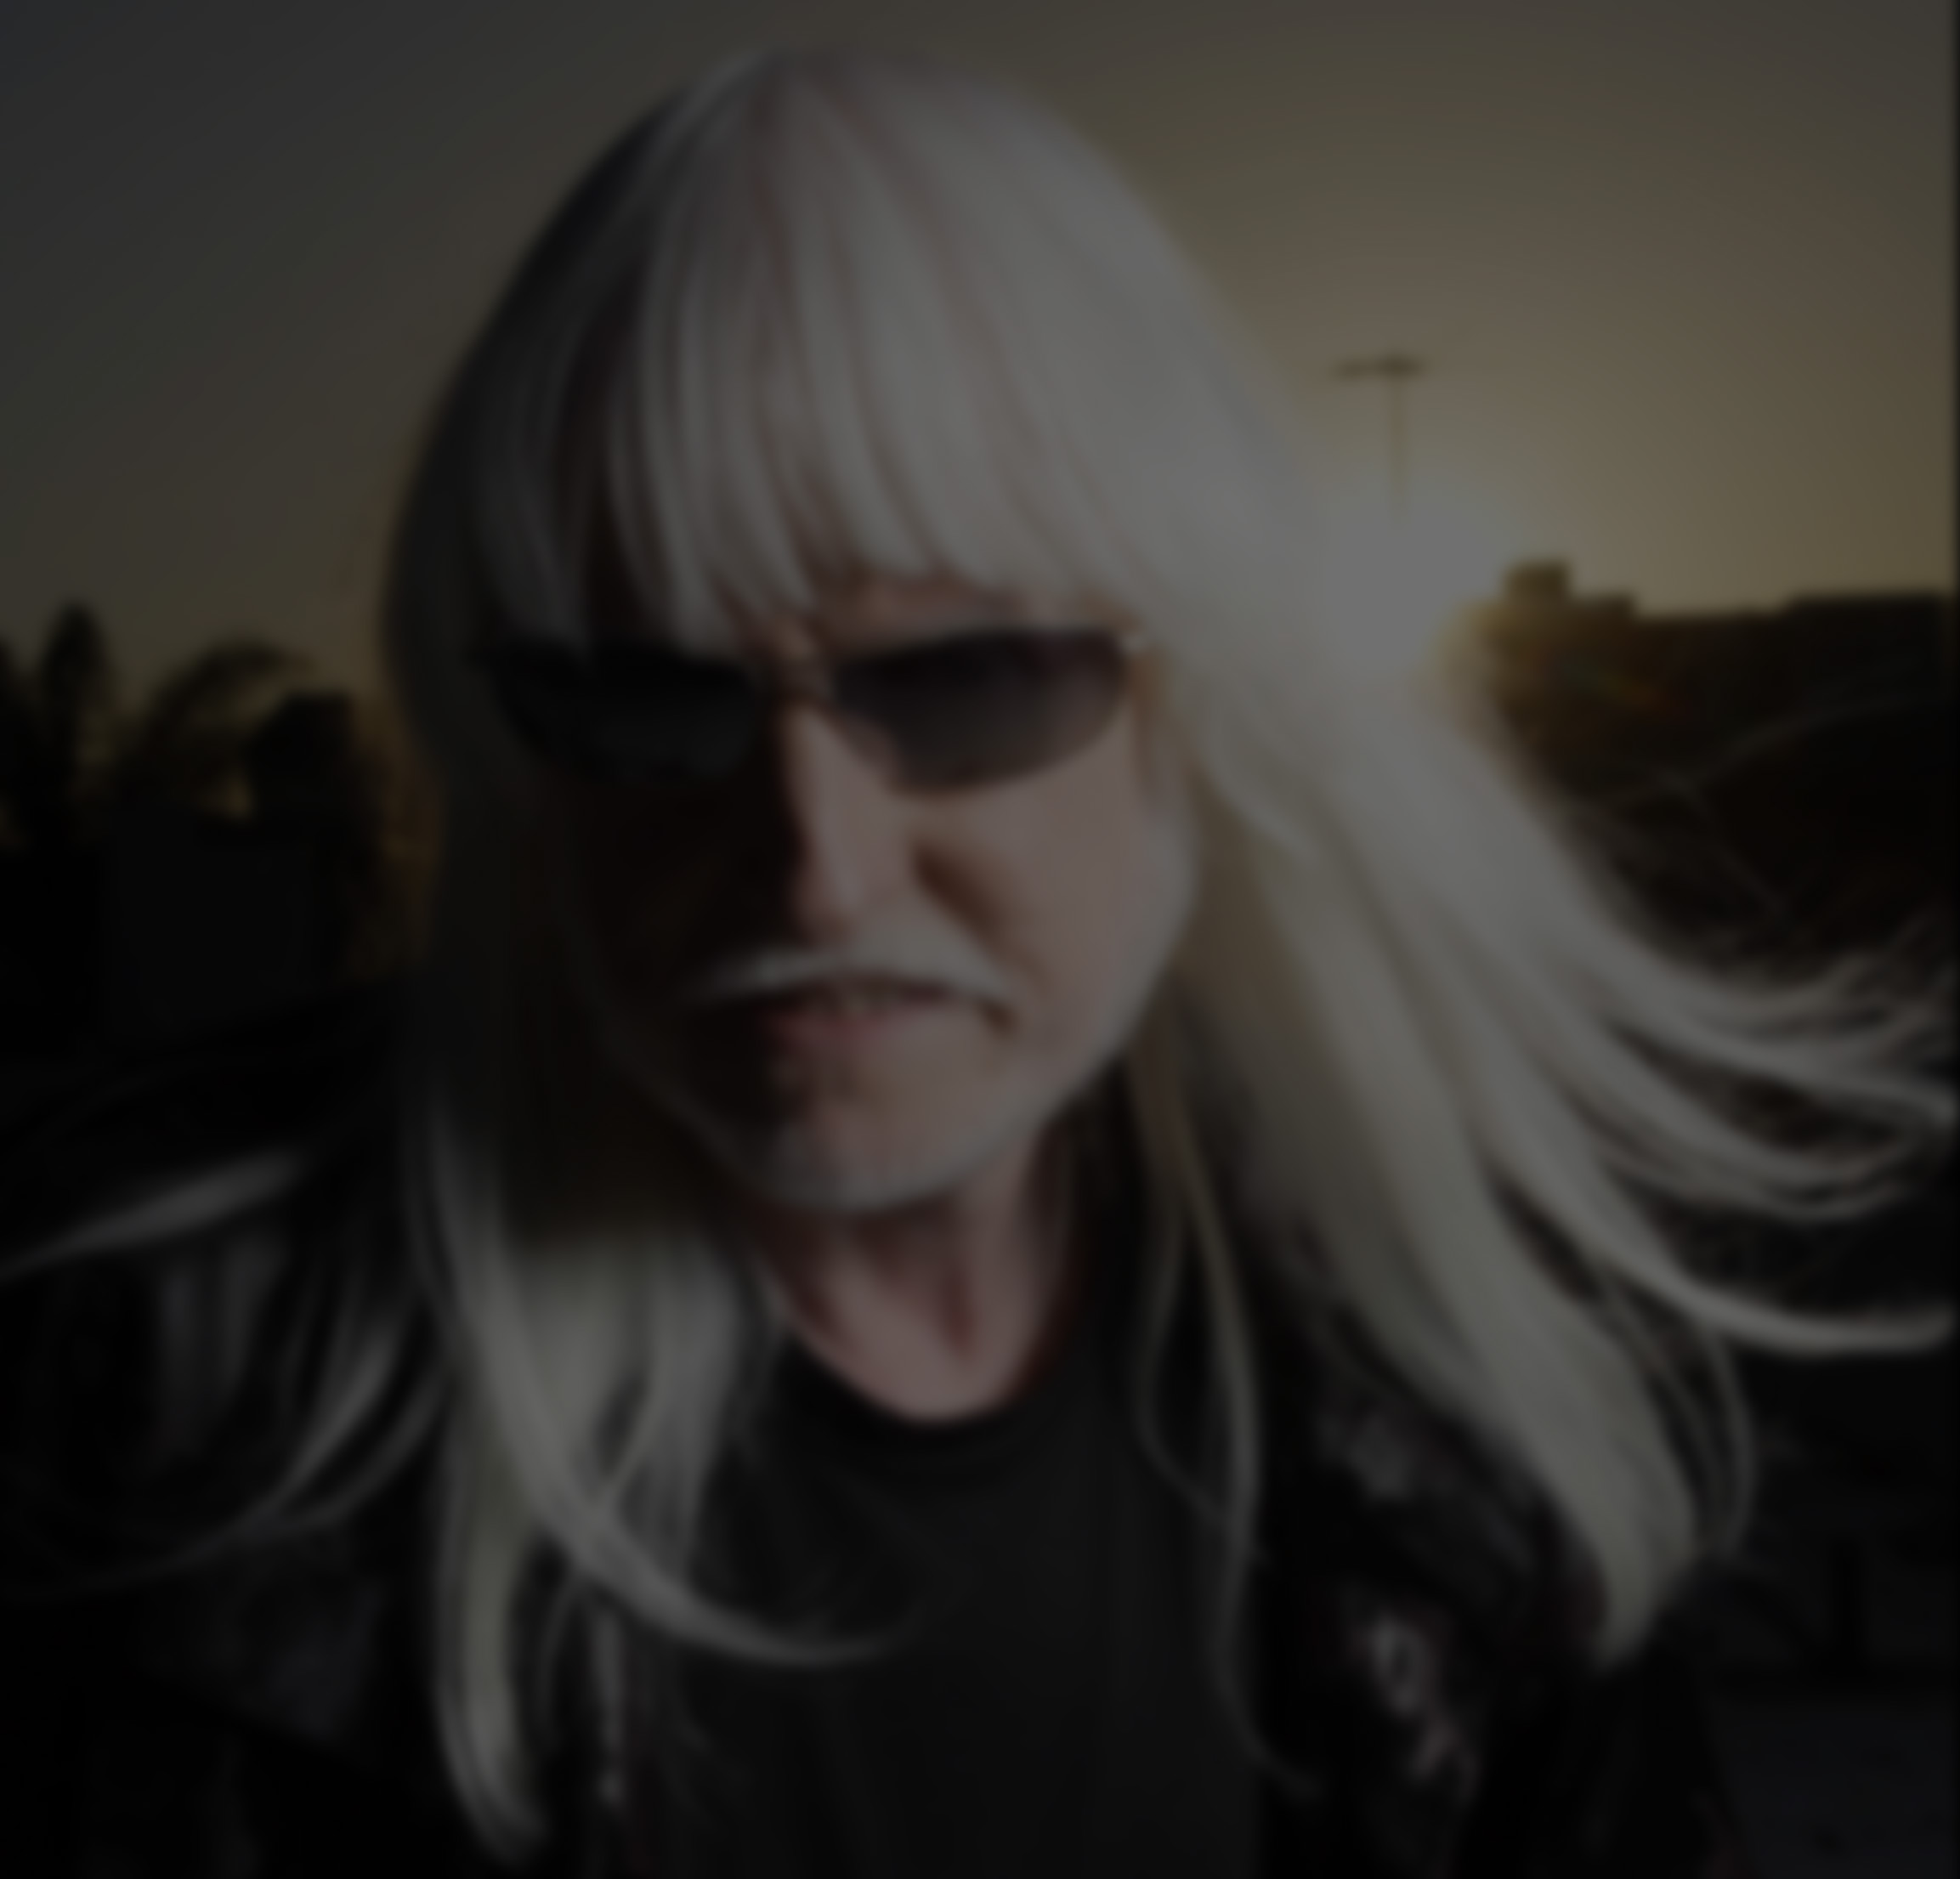 EDGAR WINTER background - Home page